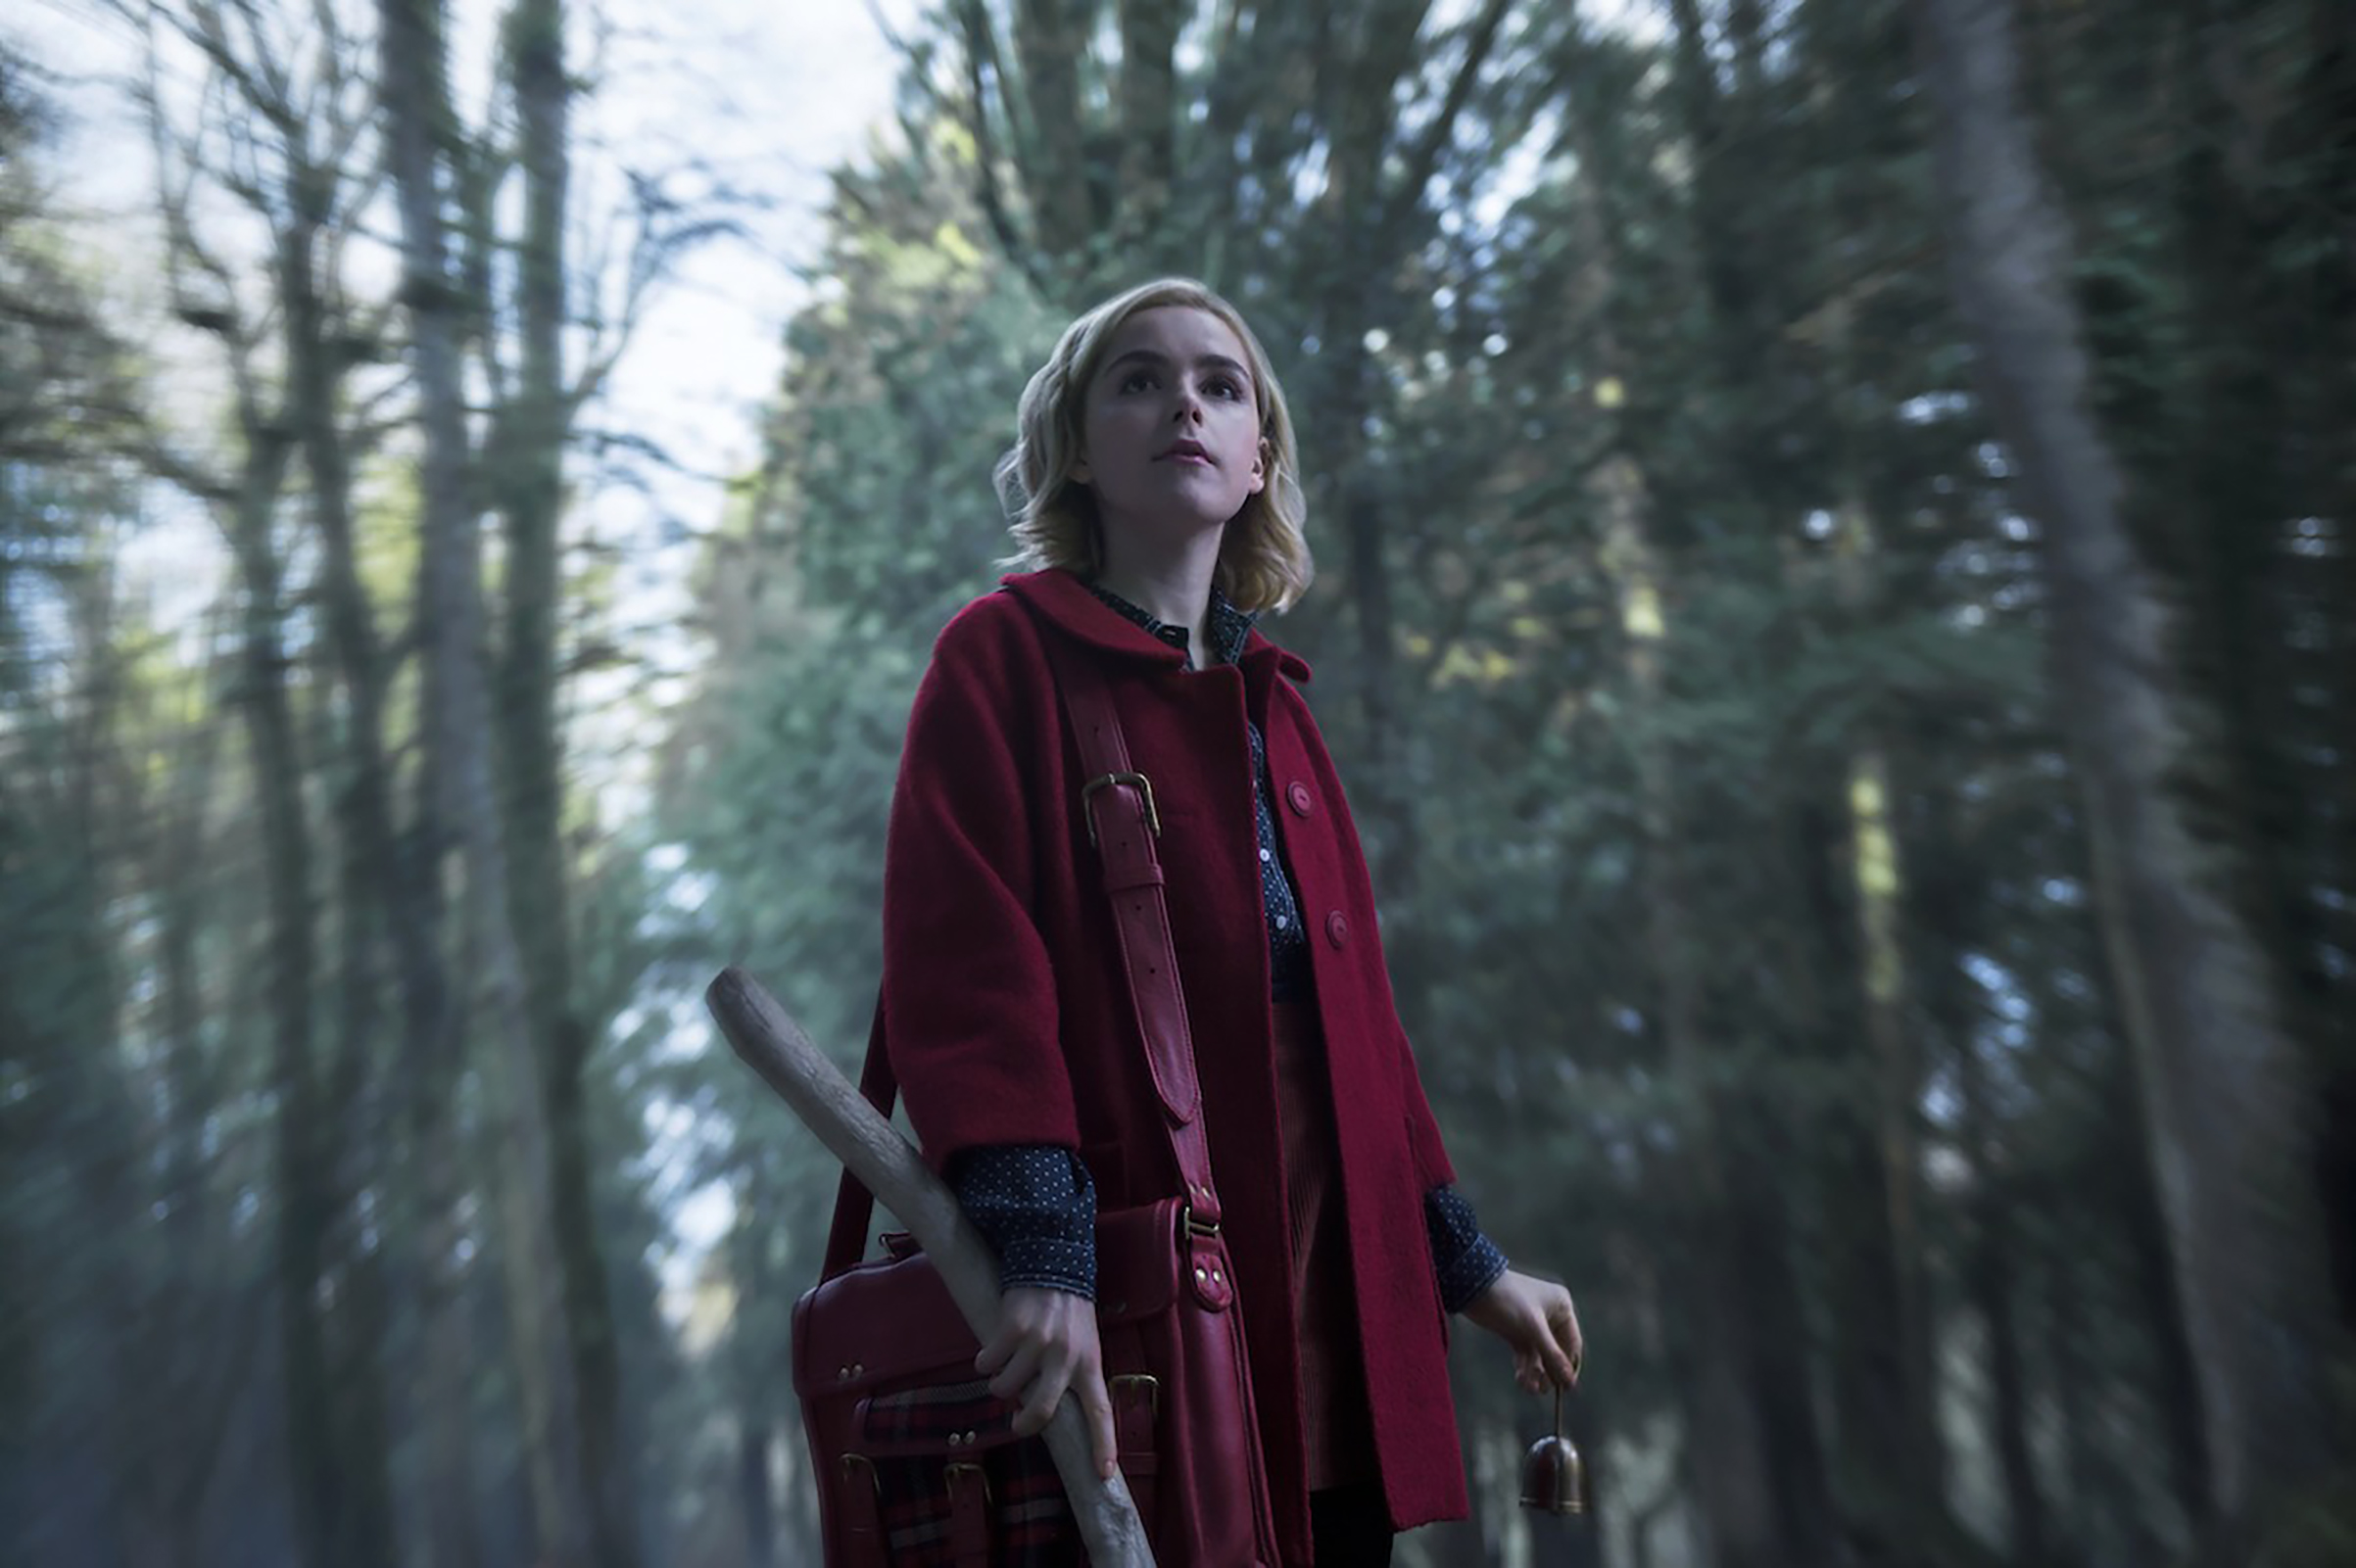 From Mad Men to good witch: Shipka stars in Sabrina